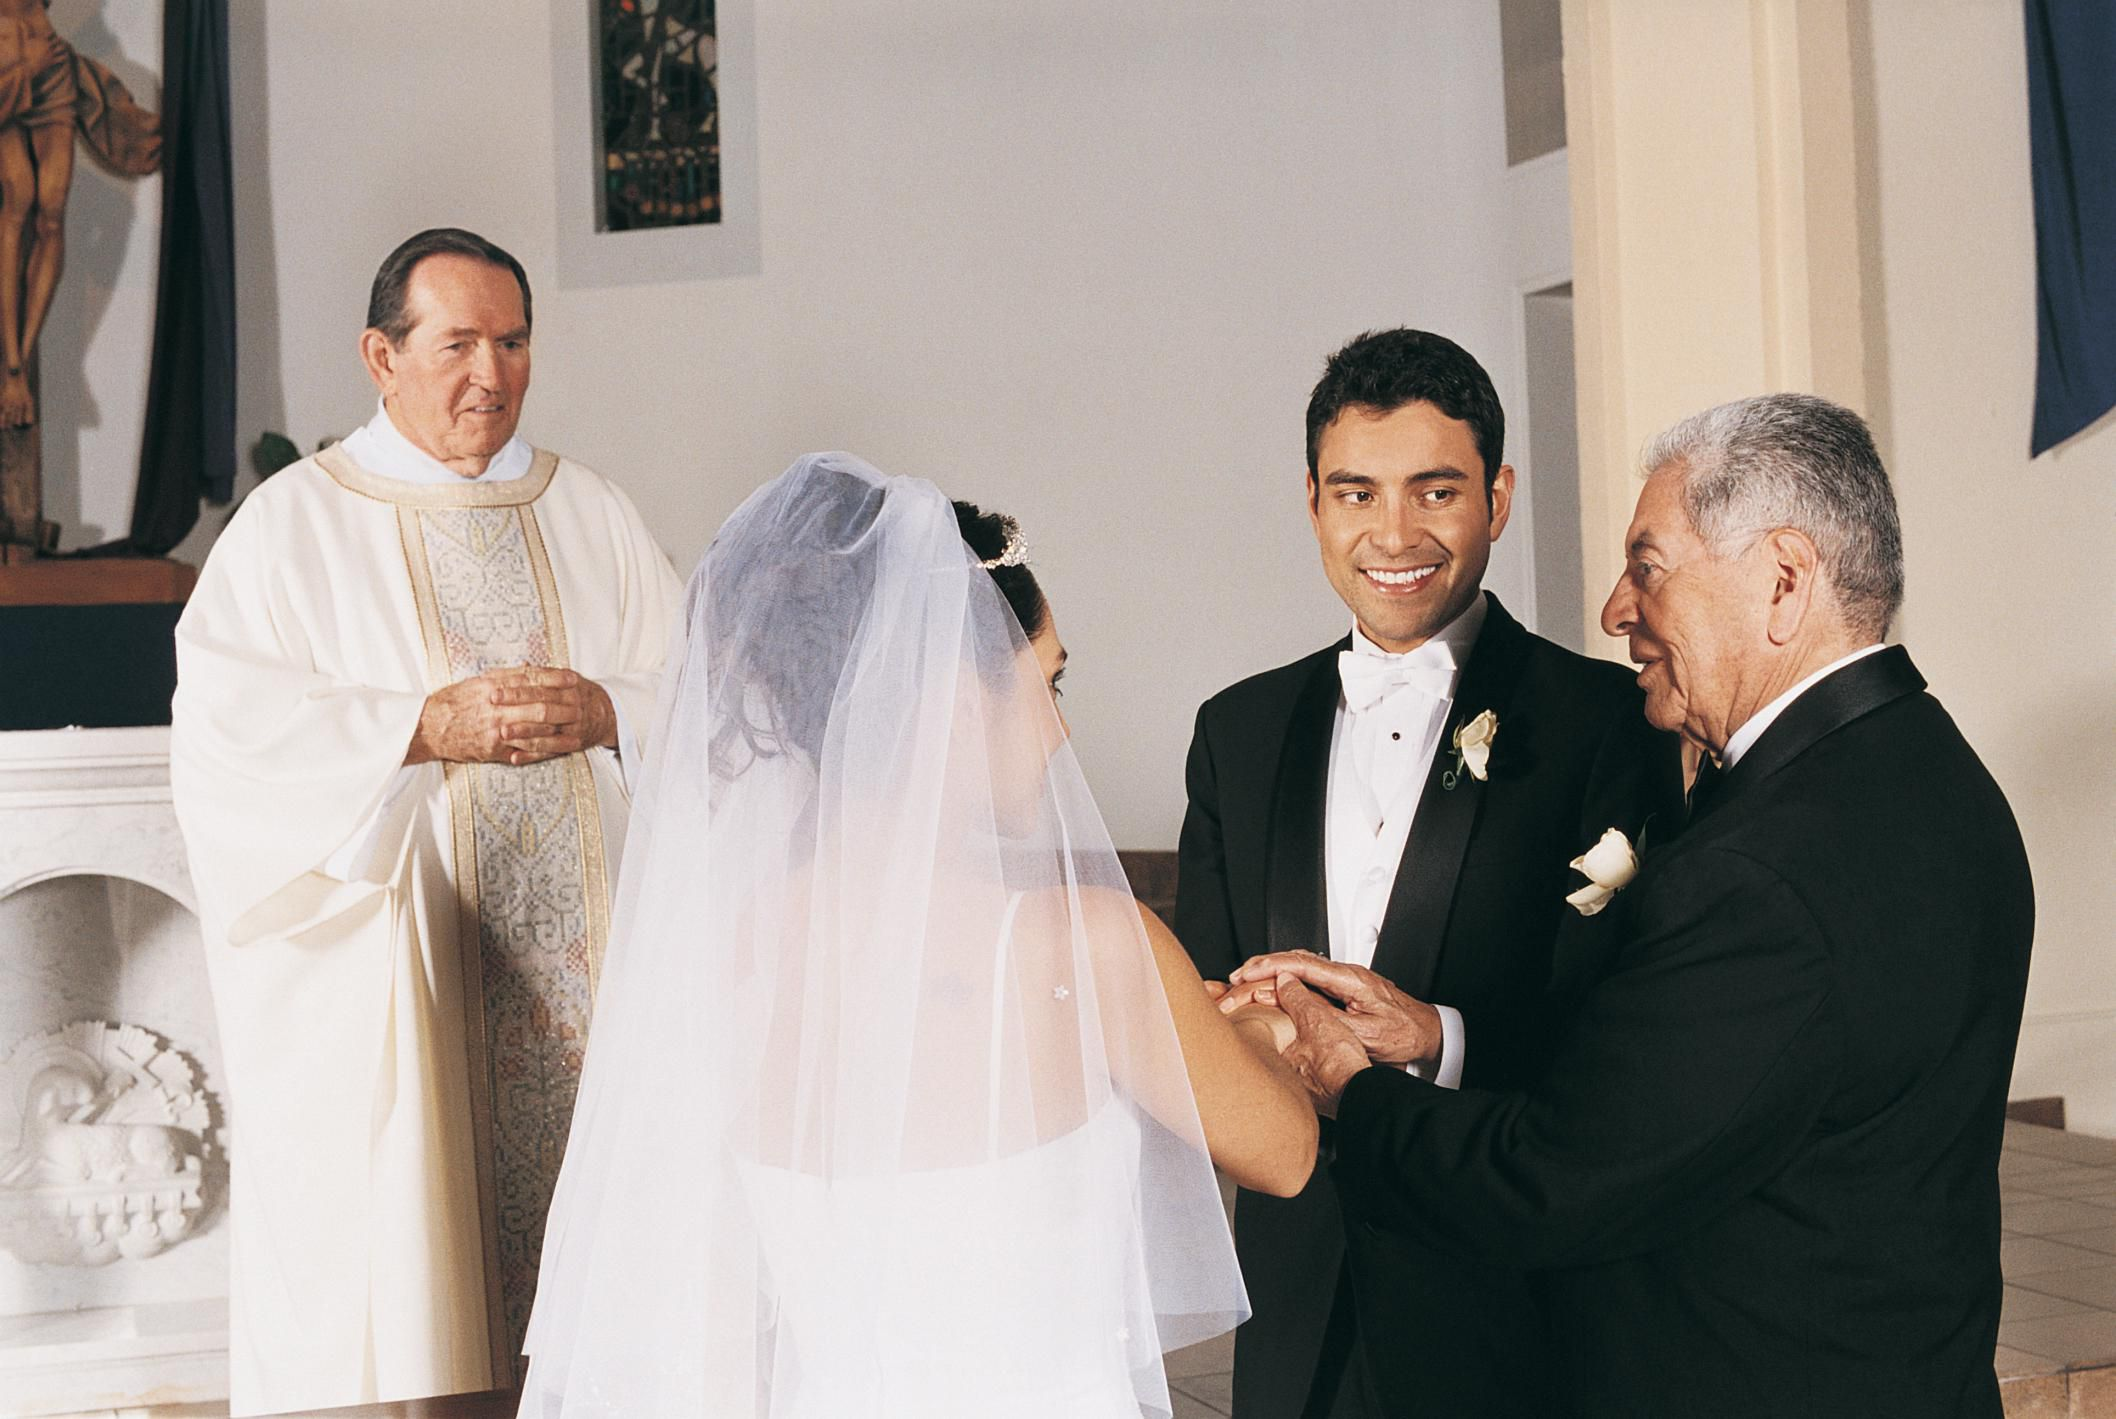 3 Scripts For Giving Away The Bride In A Christian Wedding